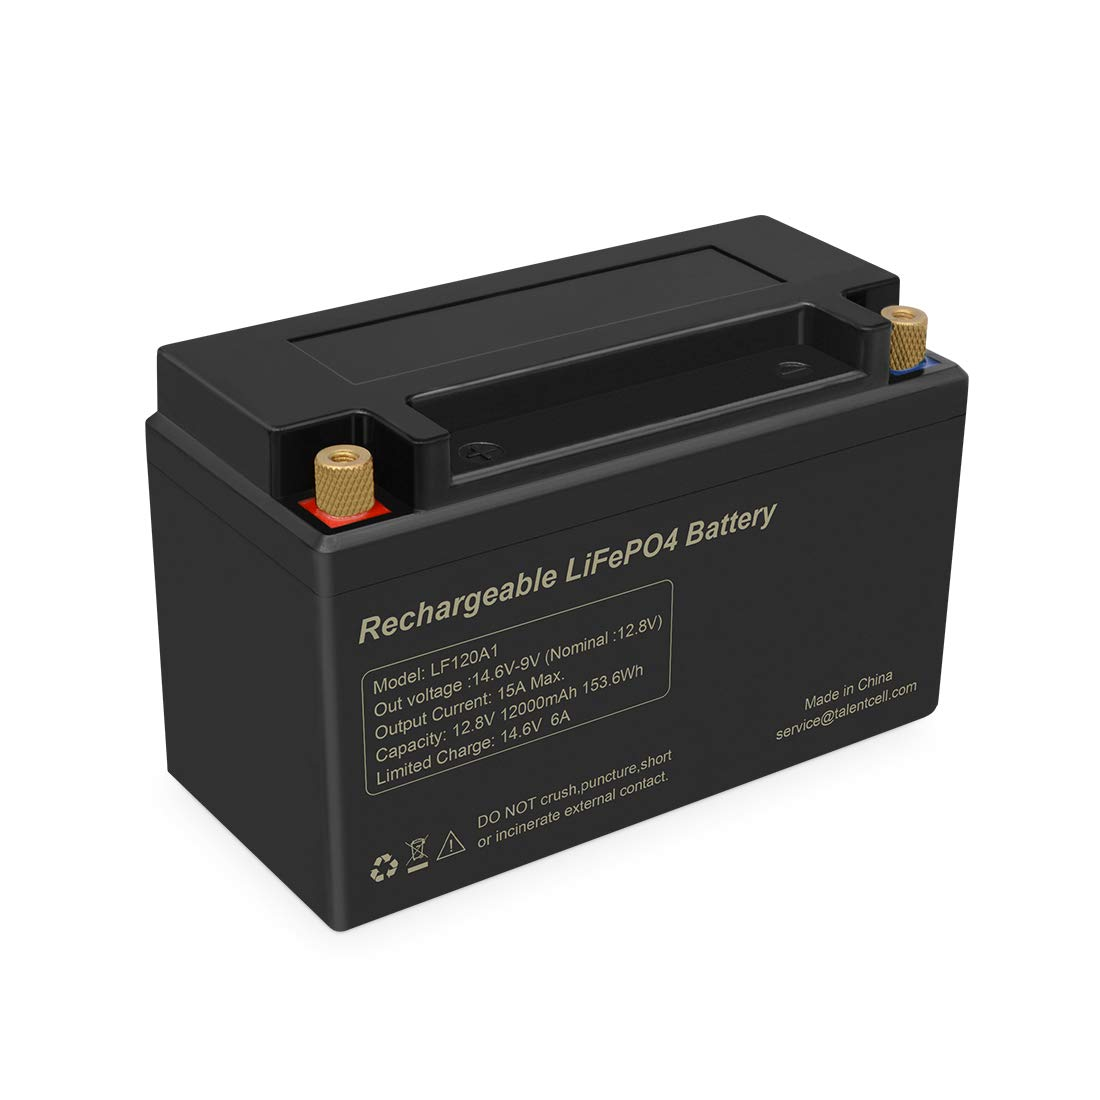 TalentCell LF120A1 Rechargeable 153.6Wh 12V 12Ah Lithium Iron Phosphate (LiFePO4) Battery Pack